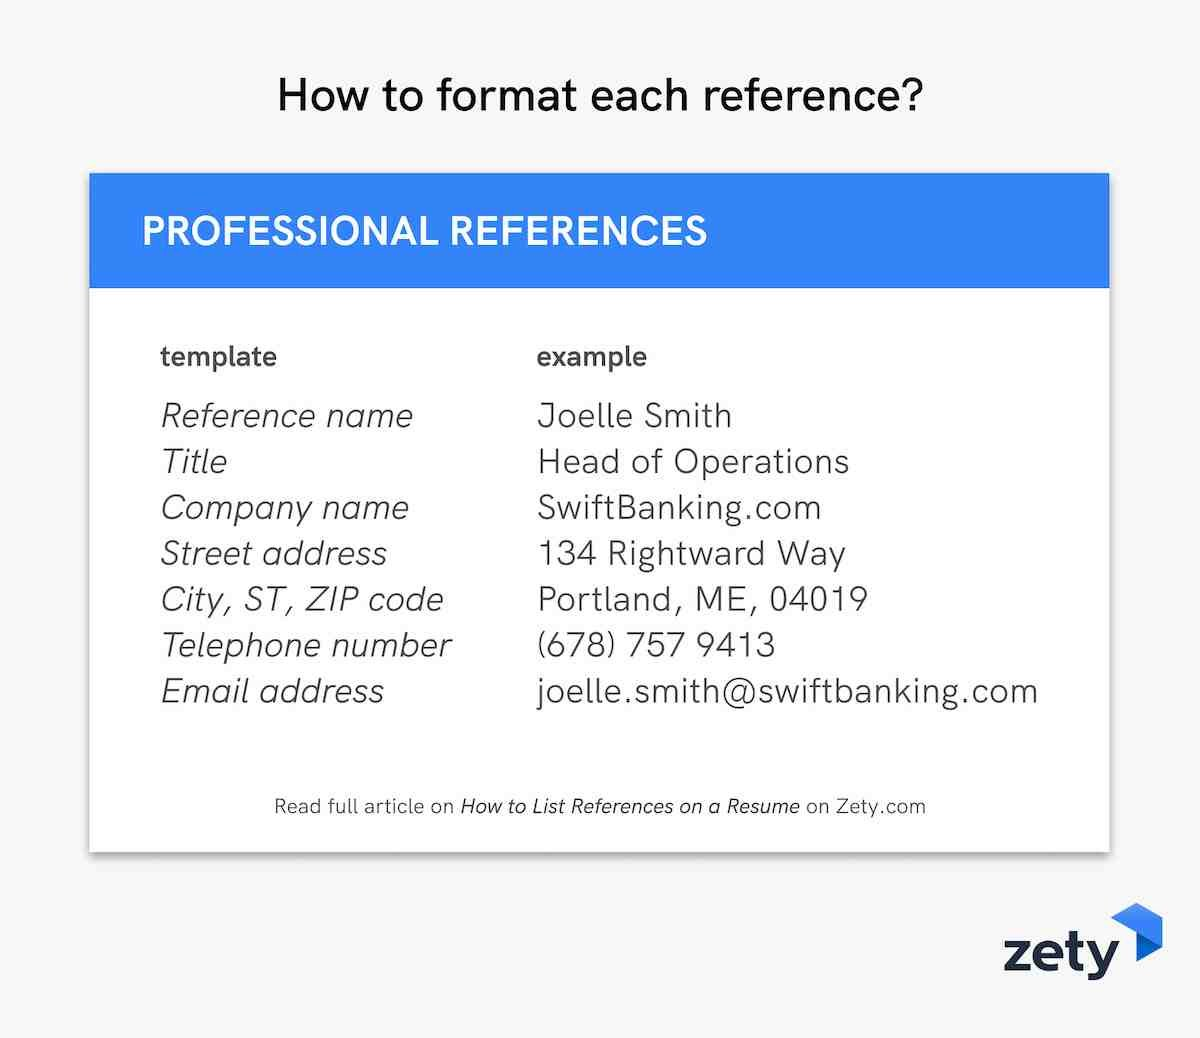 Typing references for a resume custom definition essay ghostwriters sites